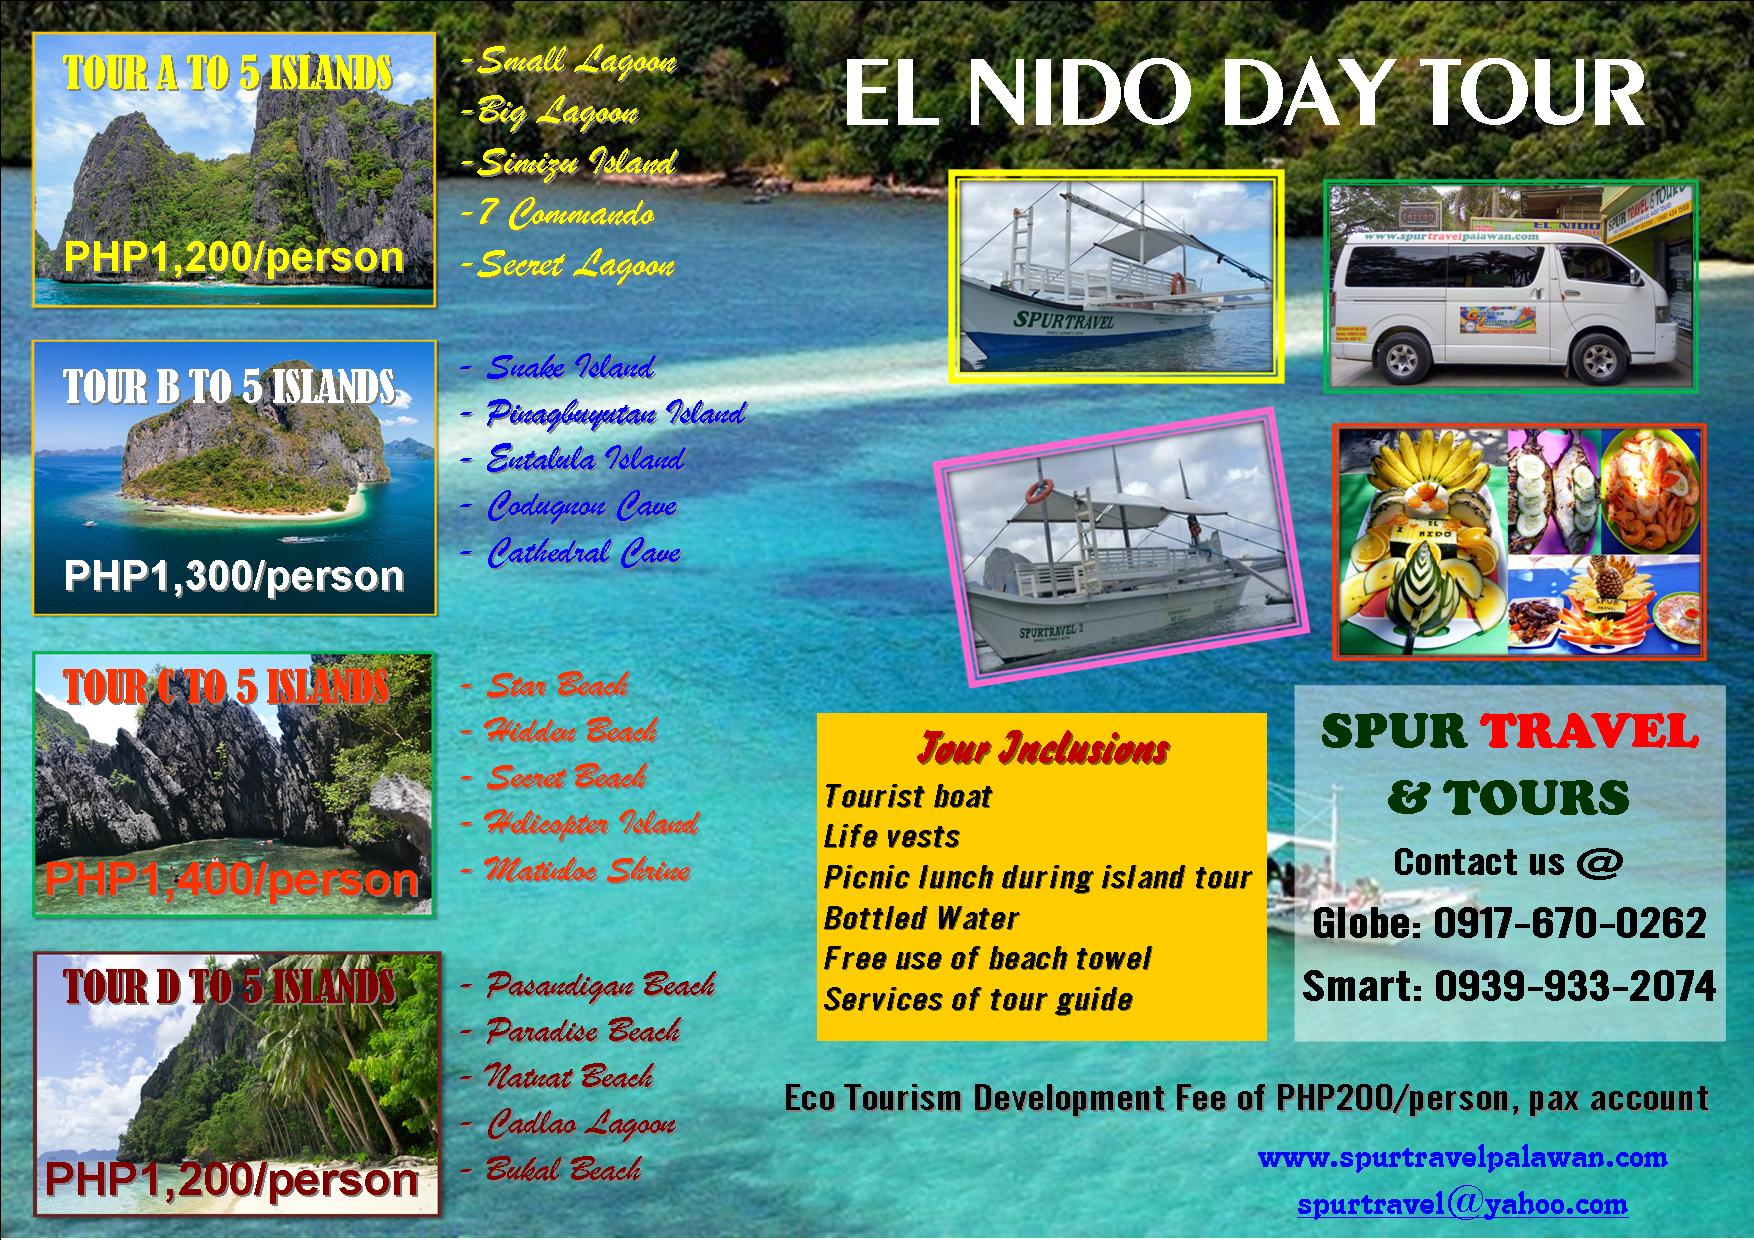 El Nido Day Tour only